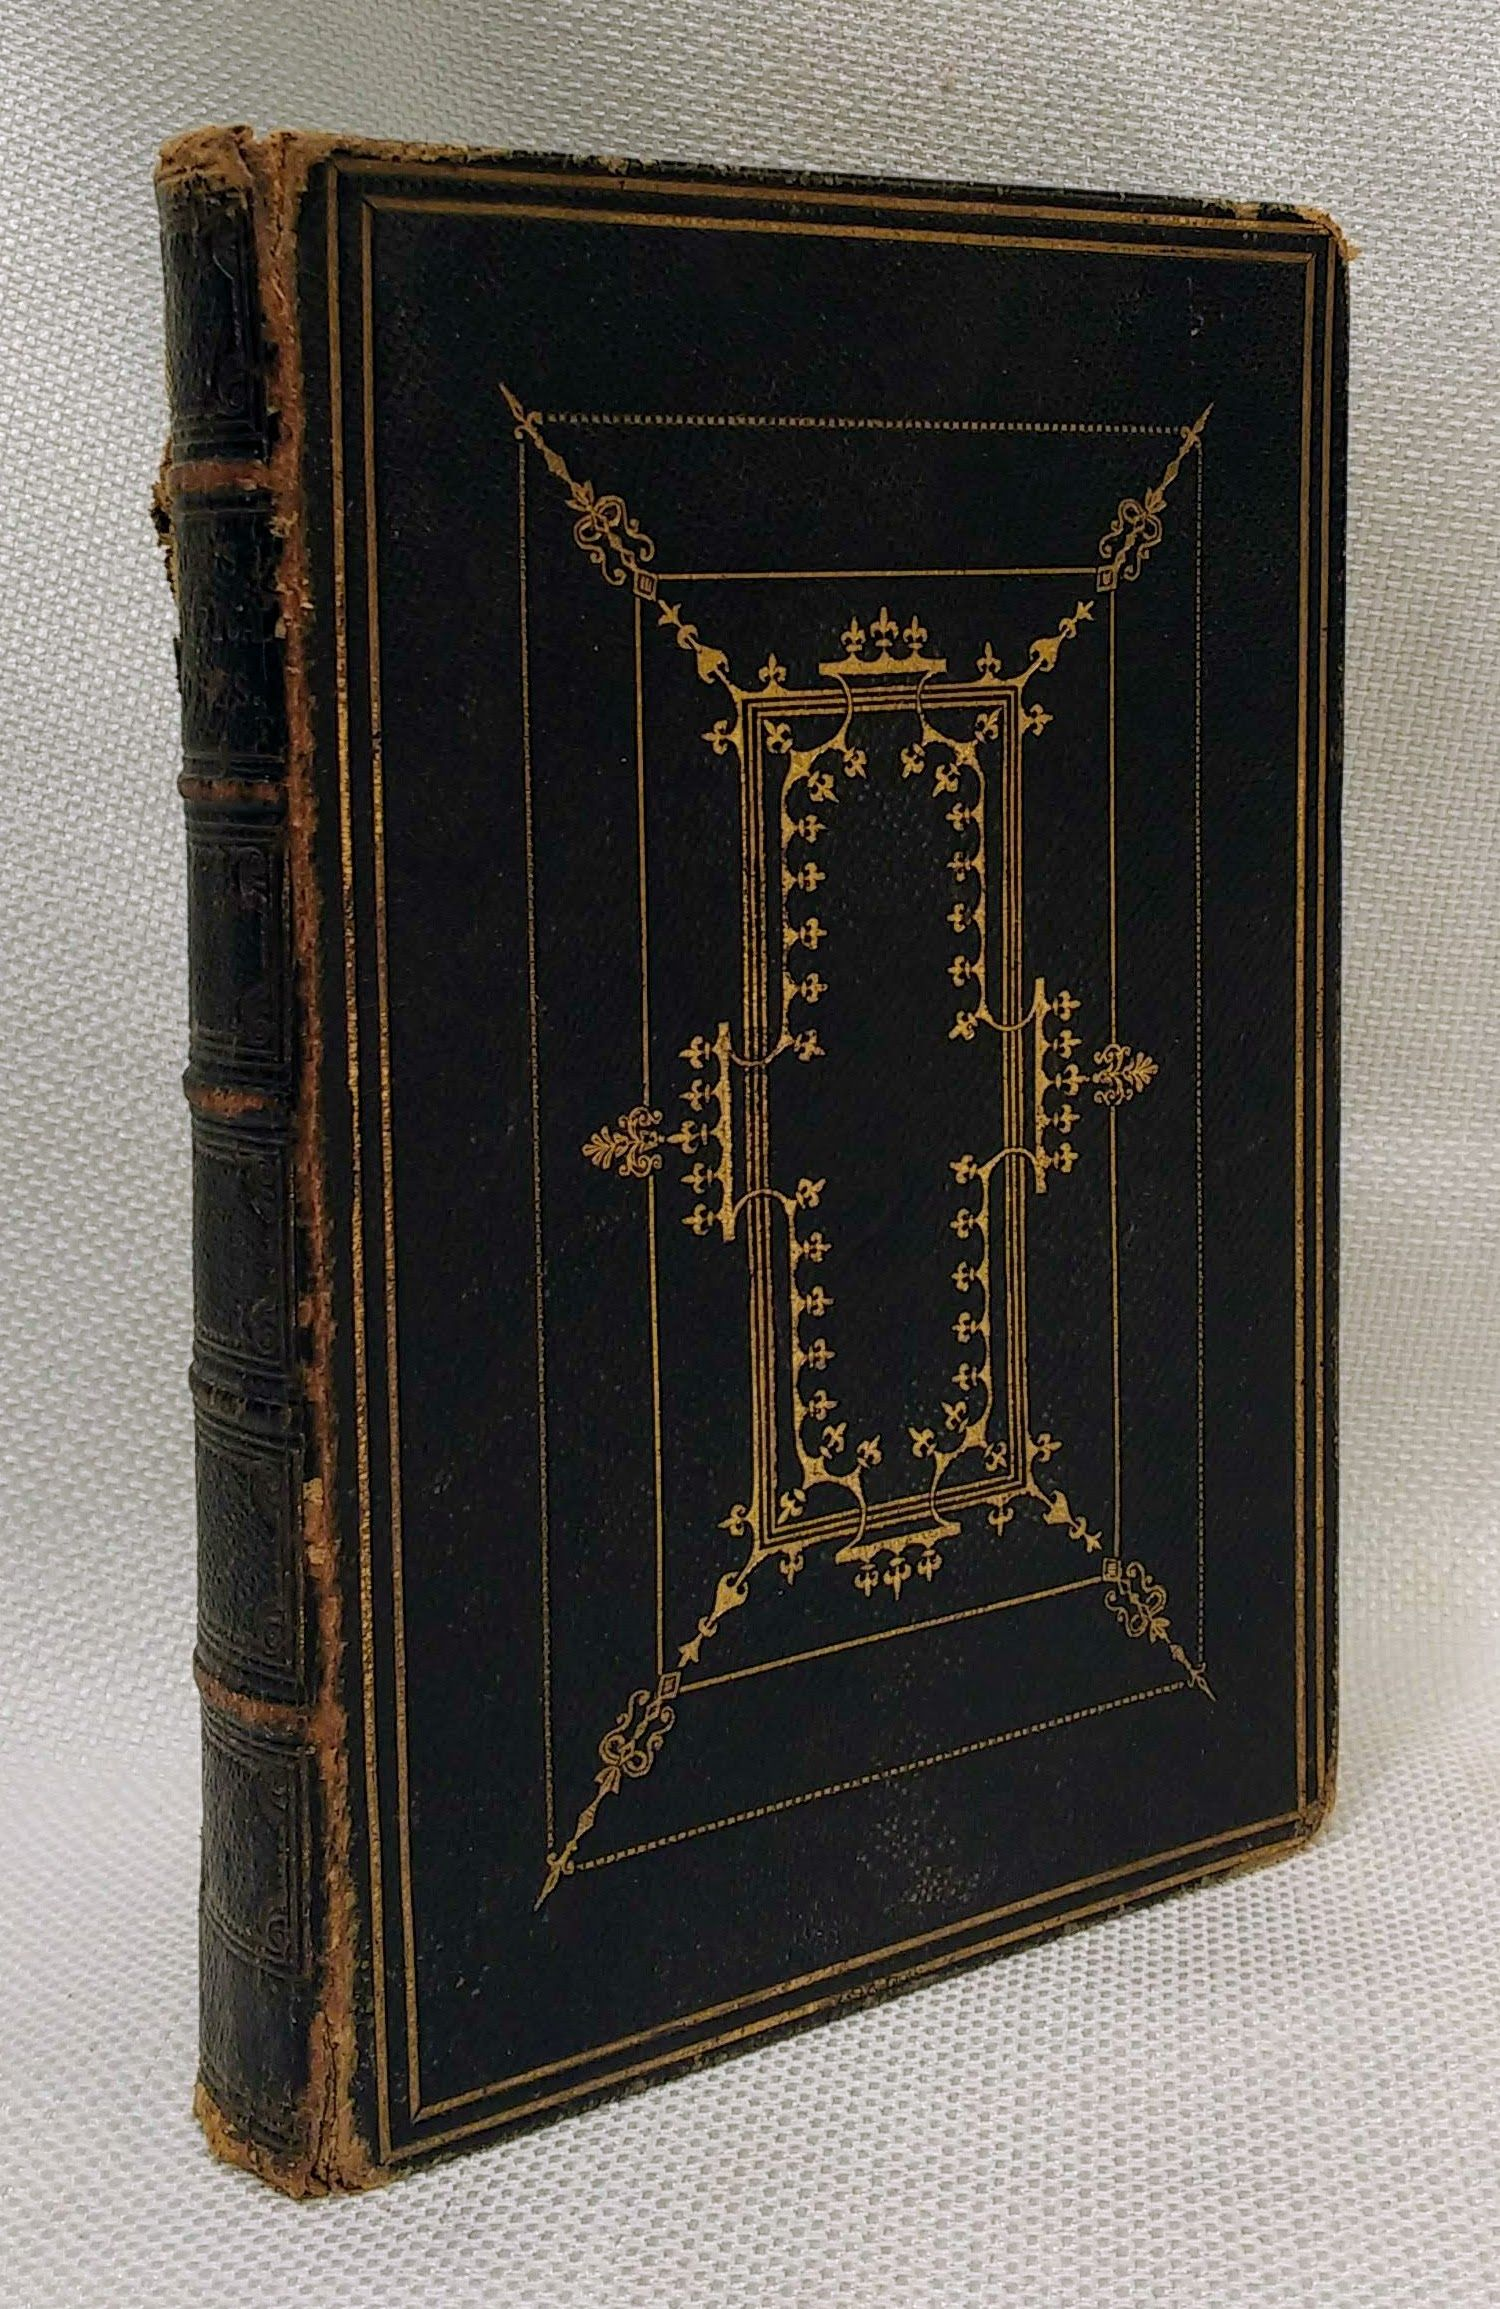 The Poetical Works of Edgar Allan Poe with a Notice on His Life and Genius by James Hannay. Complete Edition